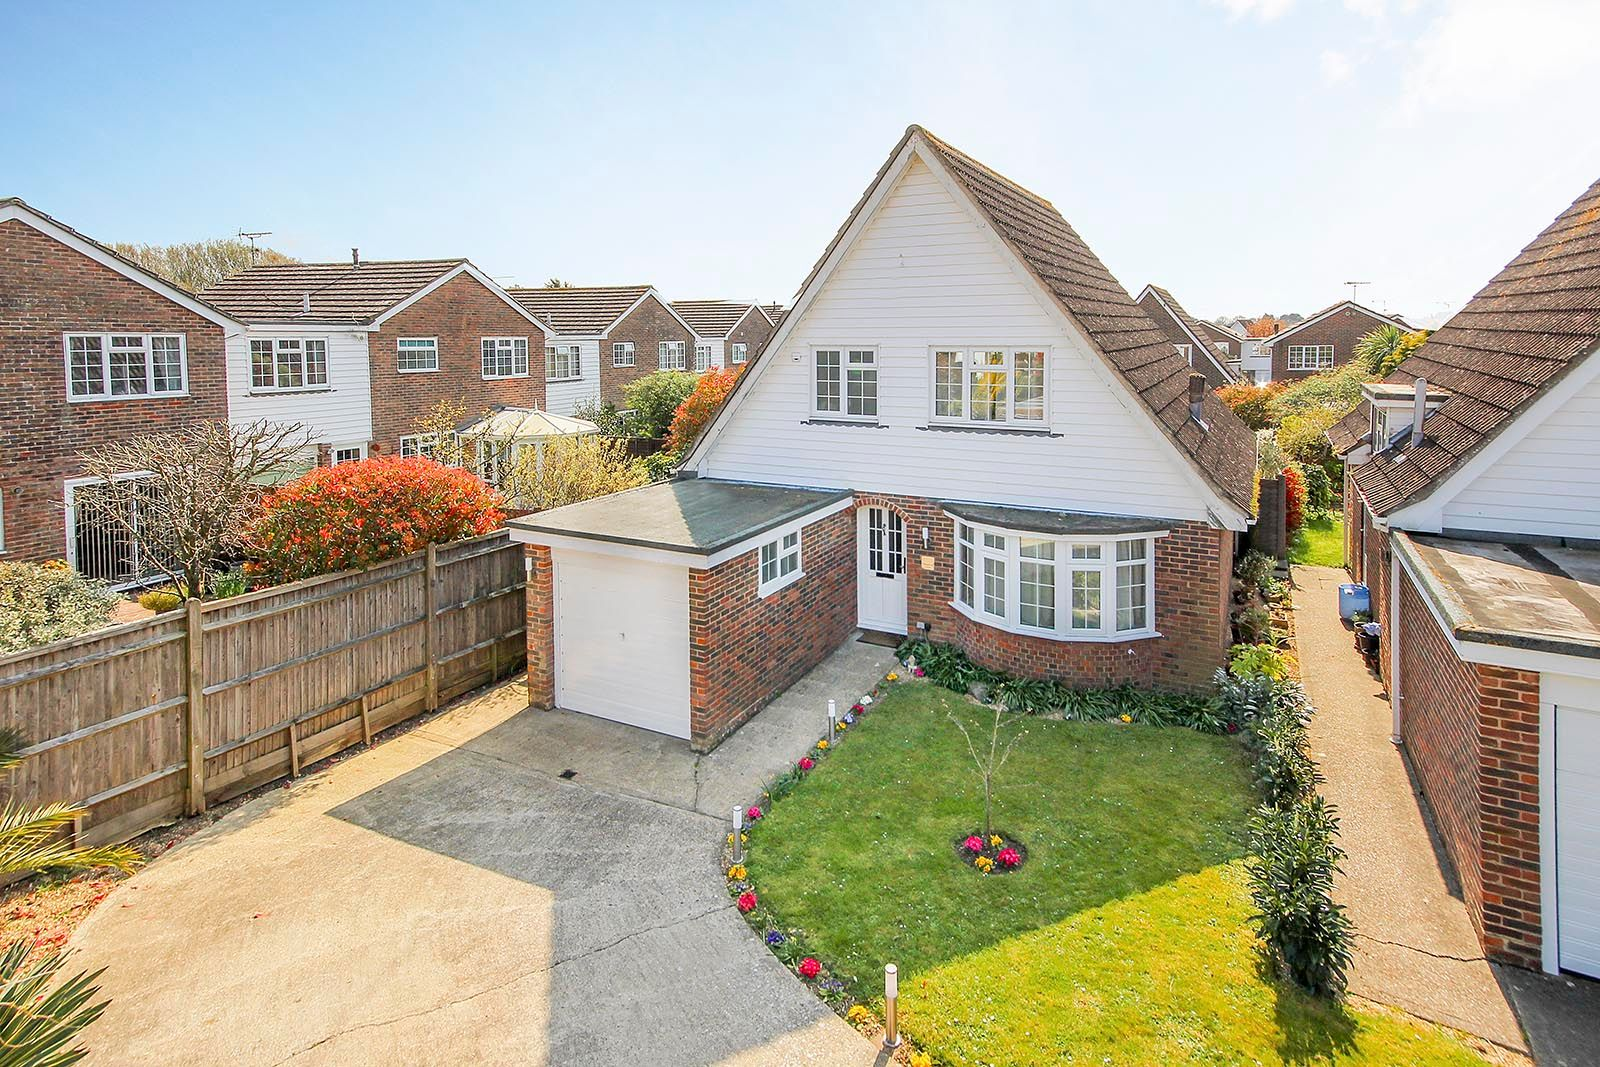 3 bed house for sale in Woodlands Close (COMP AUG 19) 1